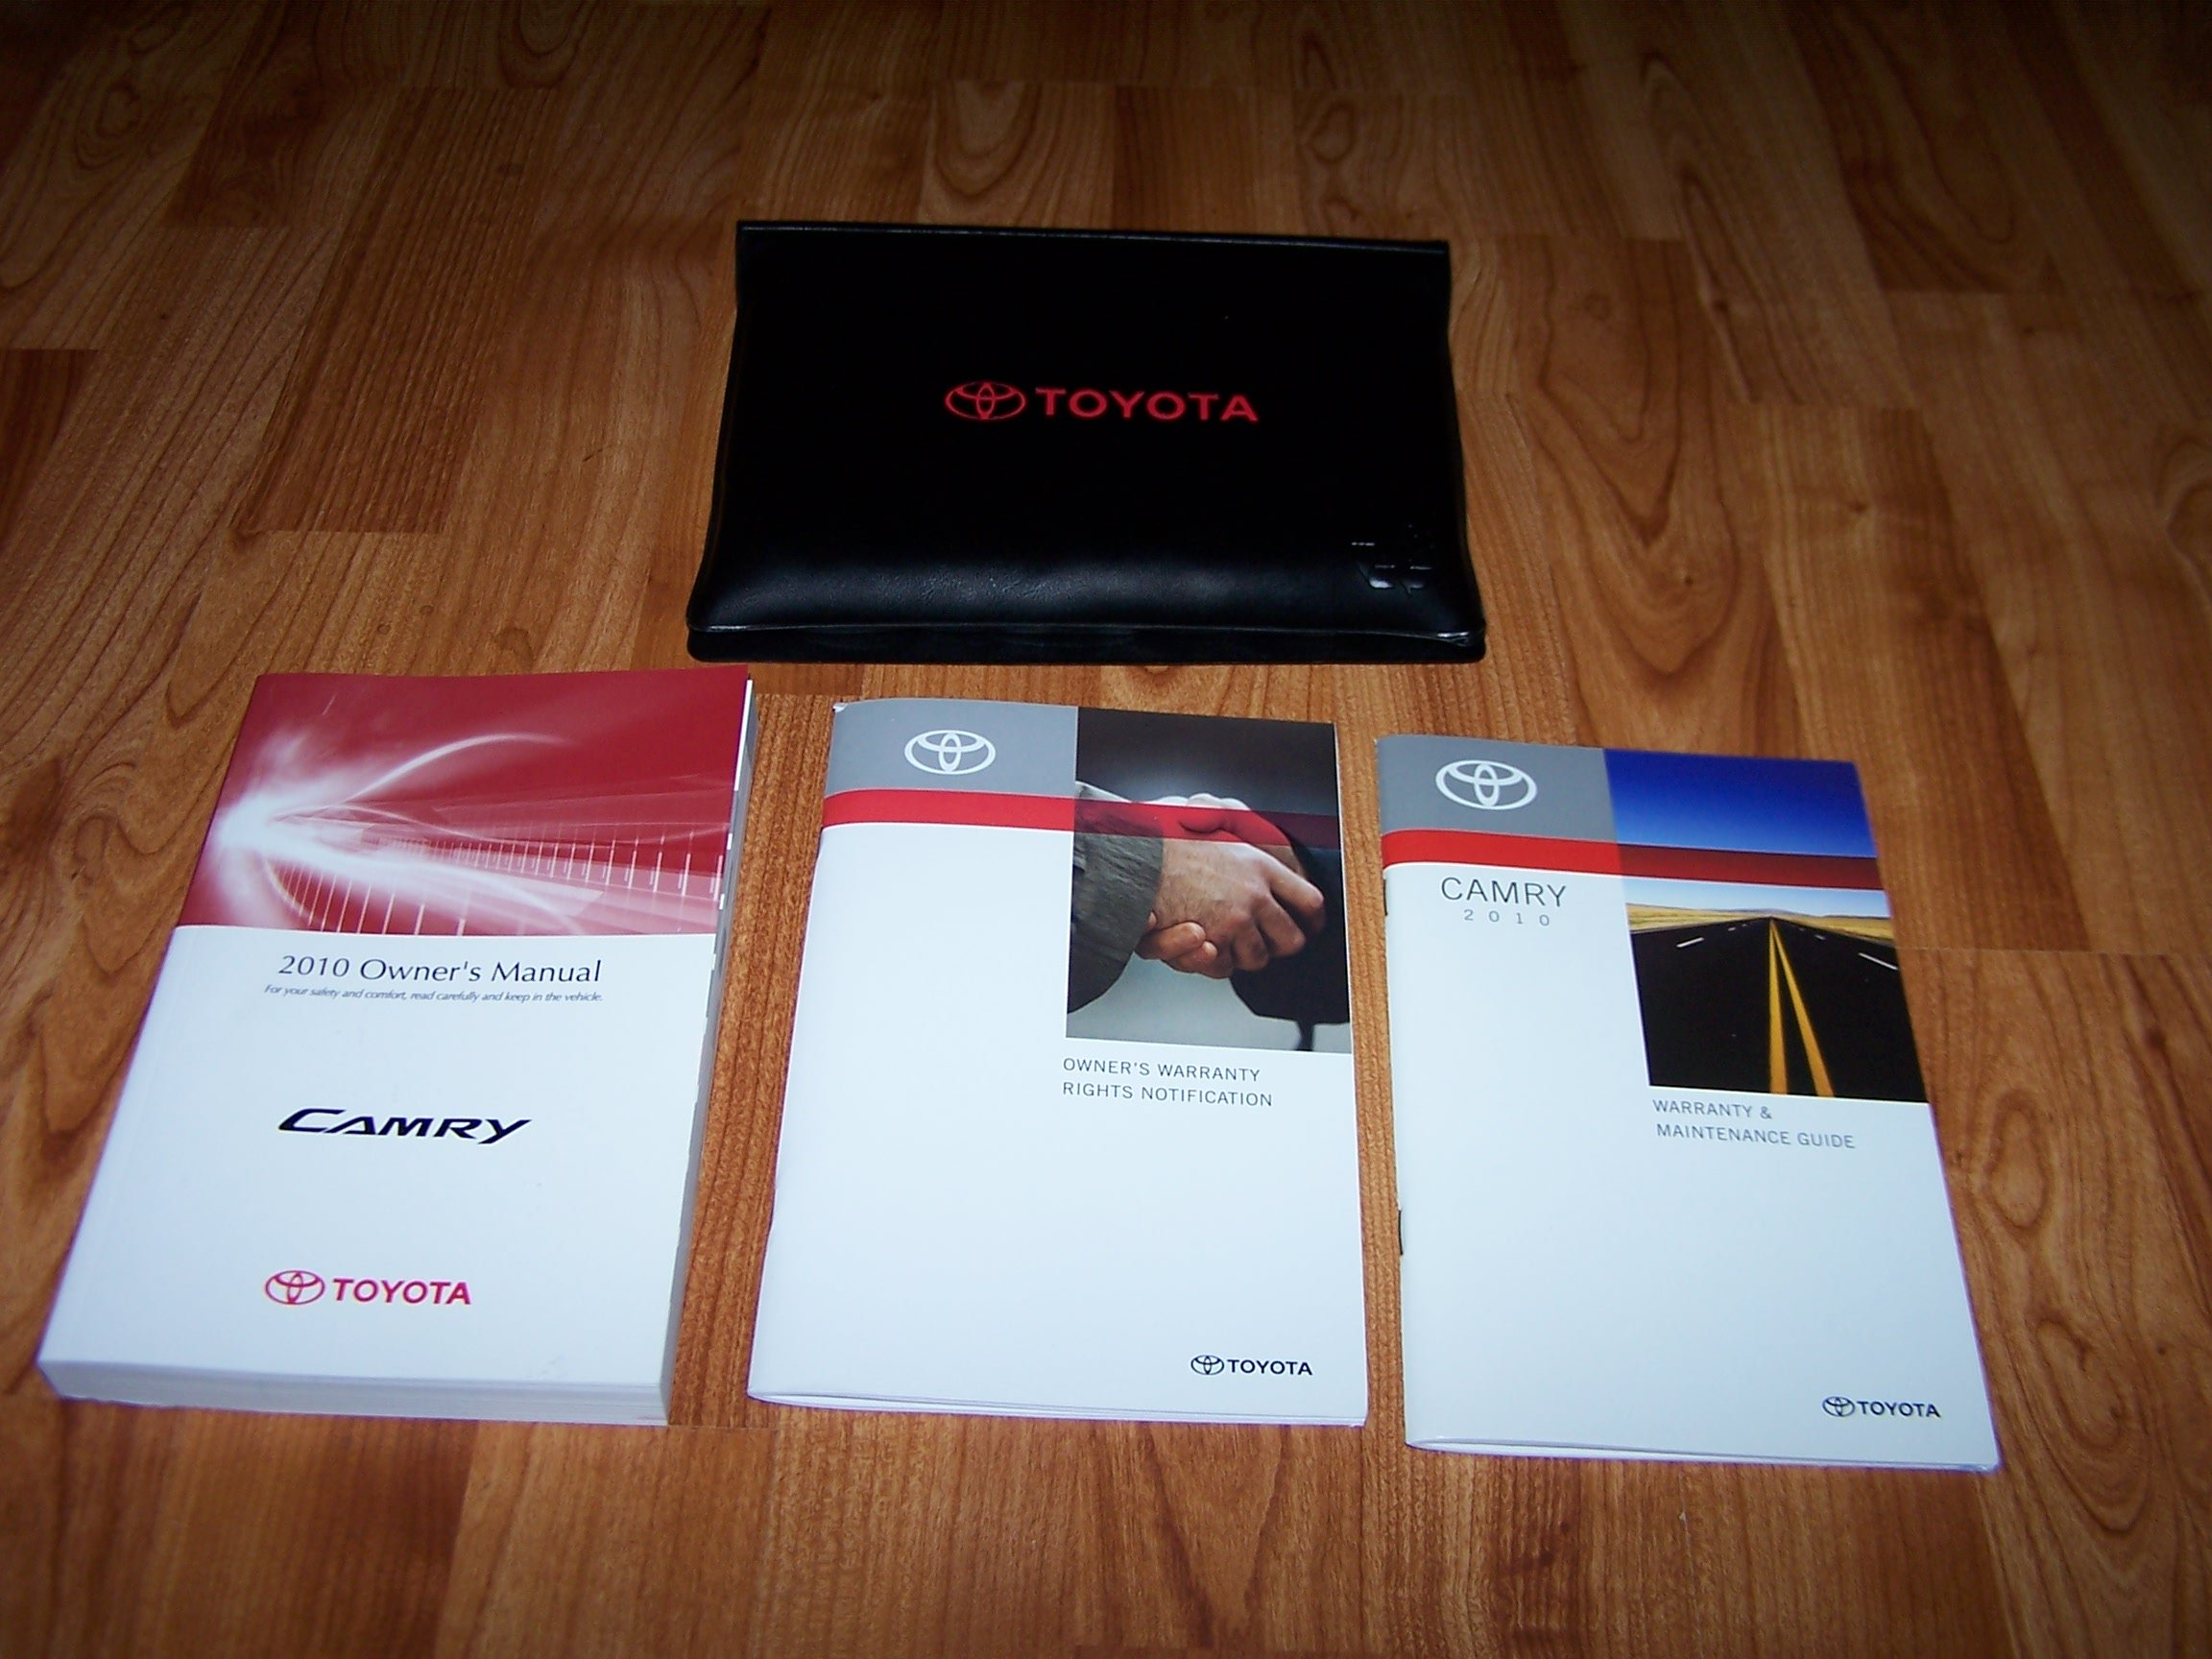 2010 toyota camry owners manual set toyota amazon com books rh amazon com 2010 Toyota Camry Owners Manual 2010 toyota camry hybrid owners manual